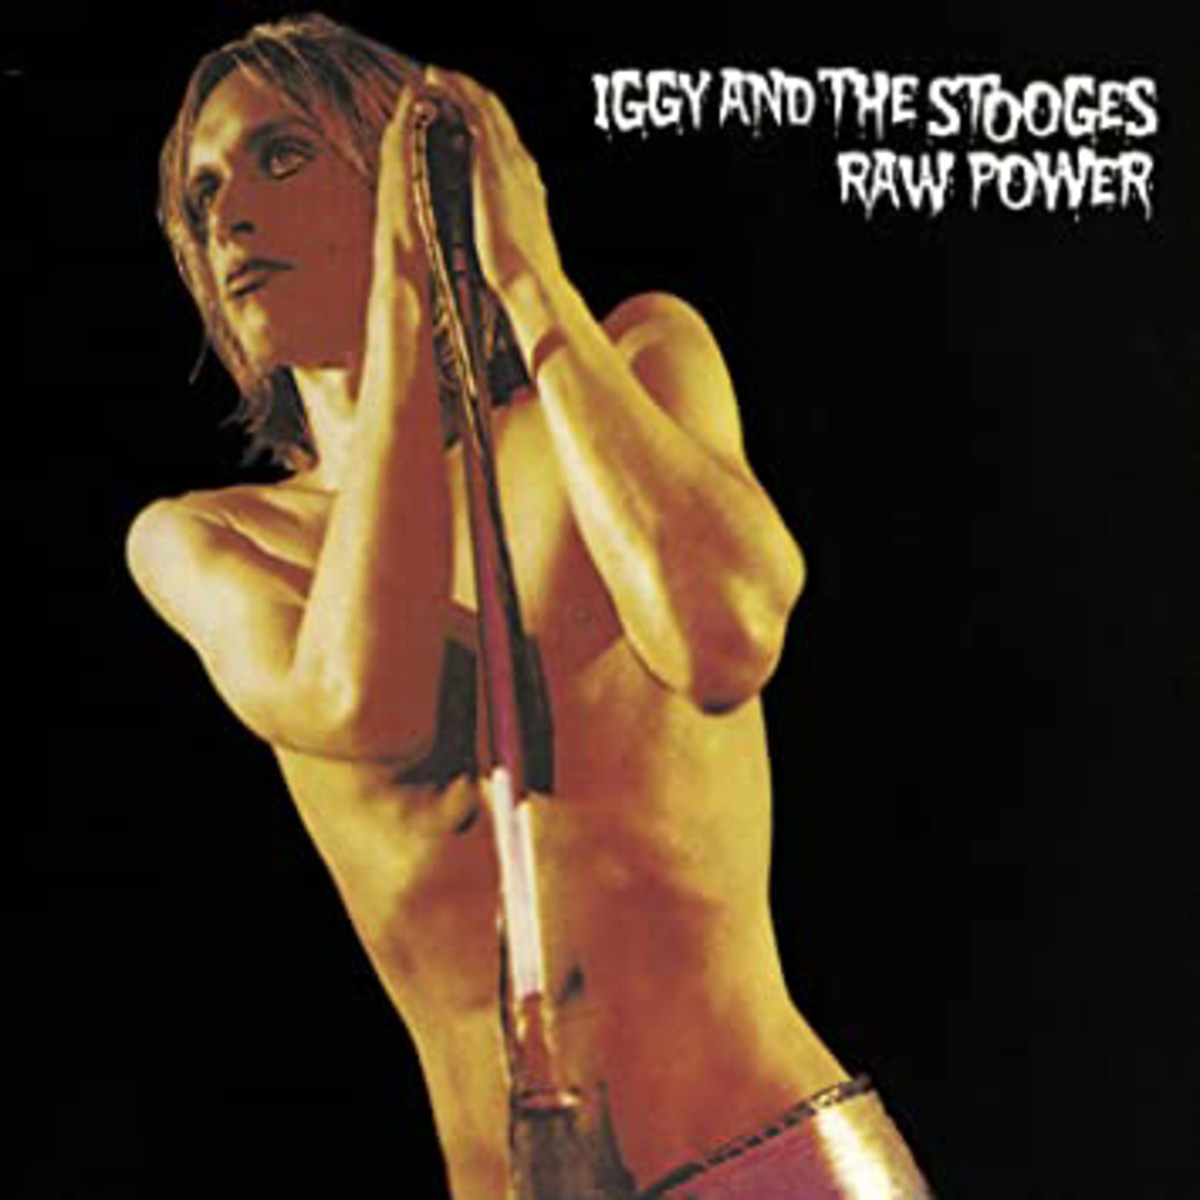 The Stooges, Raw Power